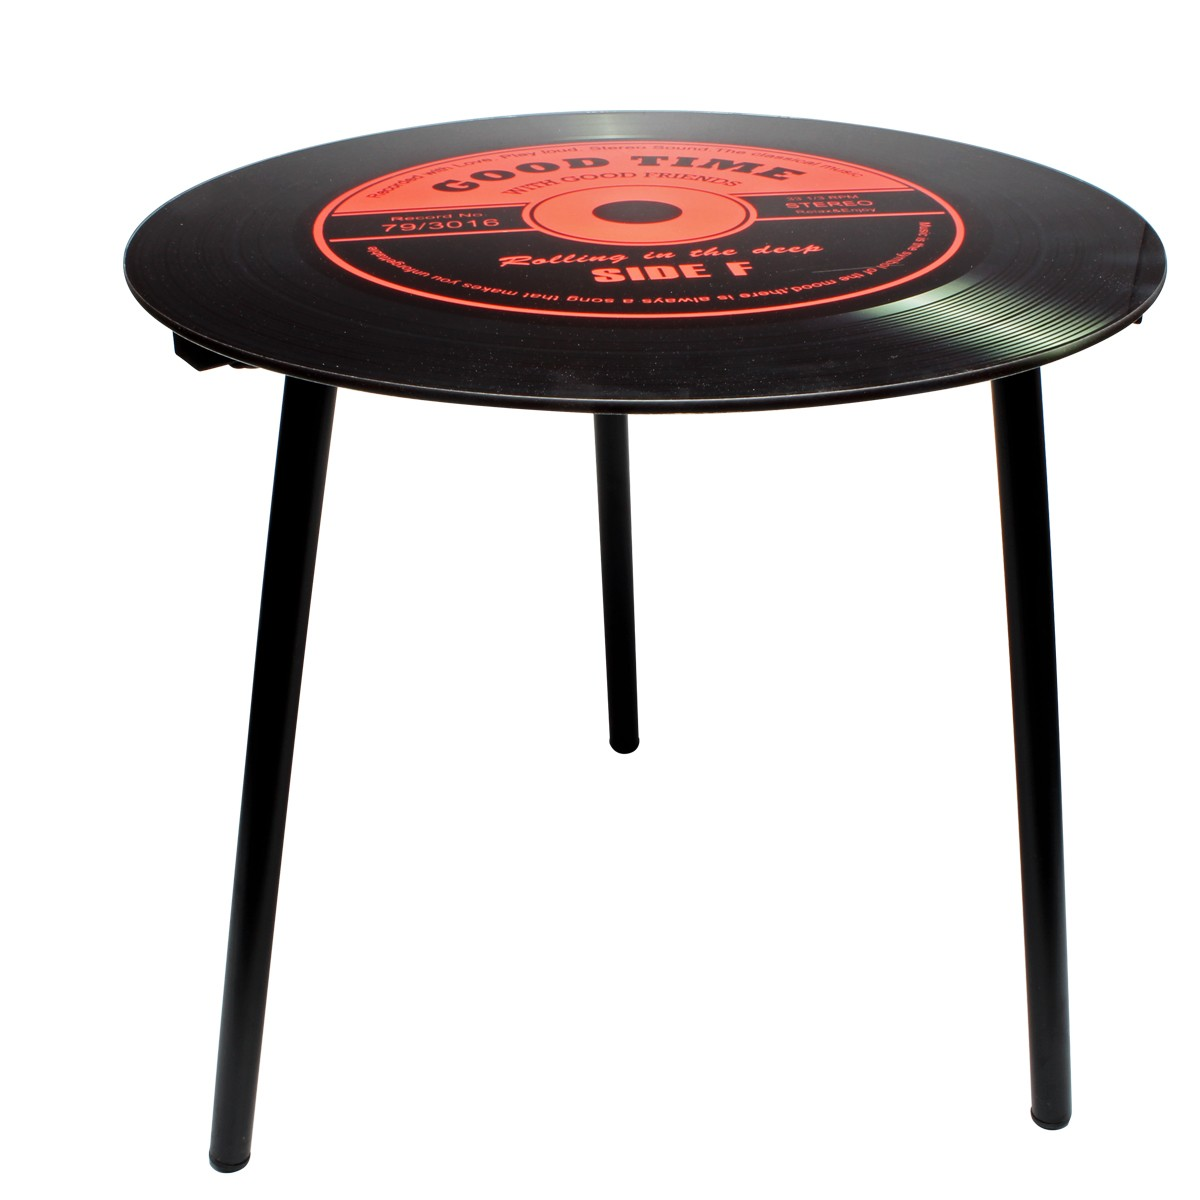 Mesa de Canto Modelo LP - Vinil Good Time Red 40x40x40cm